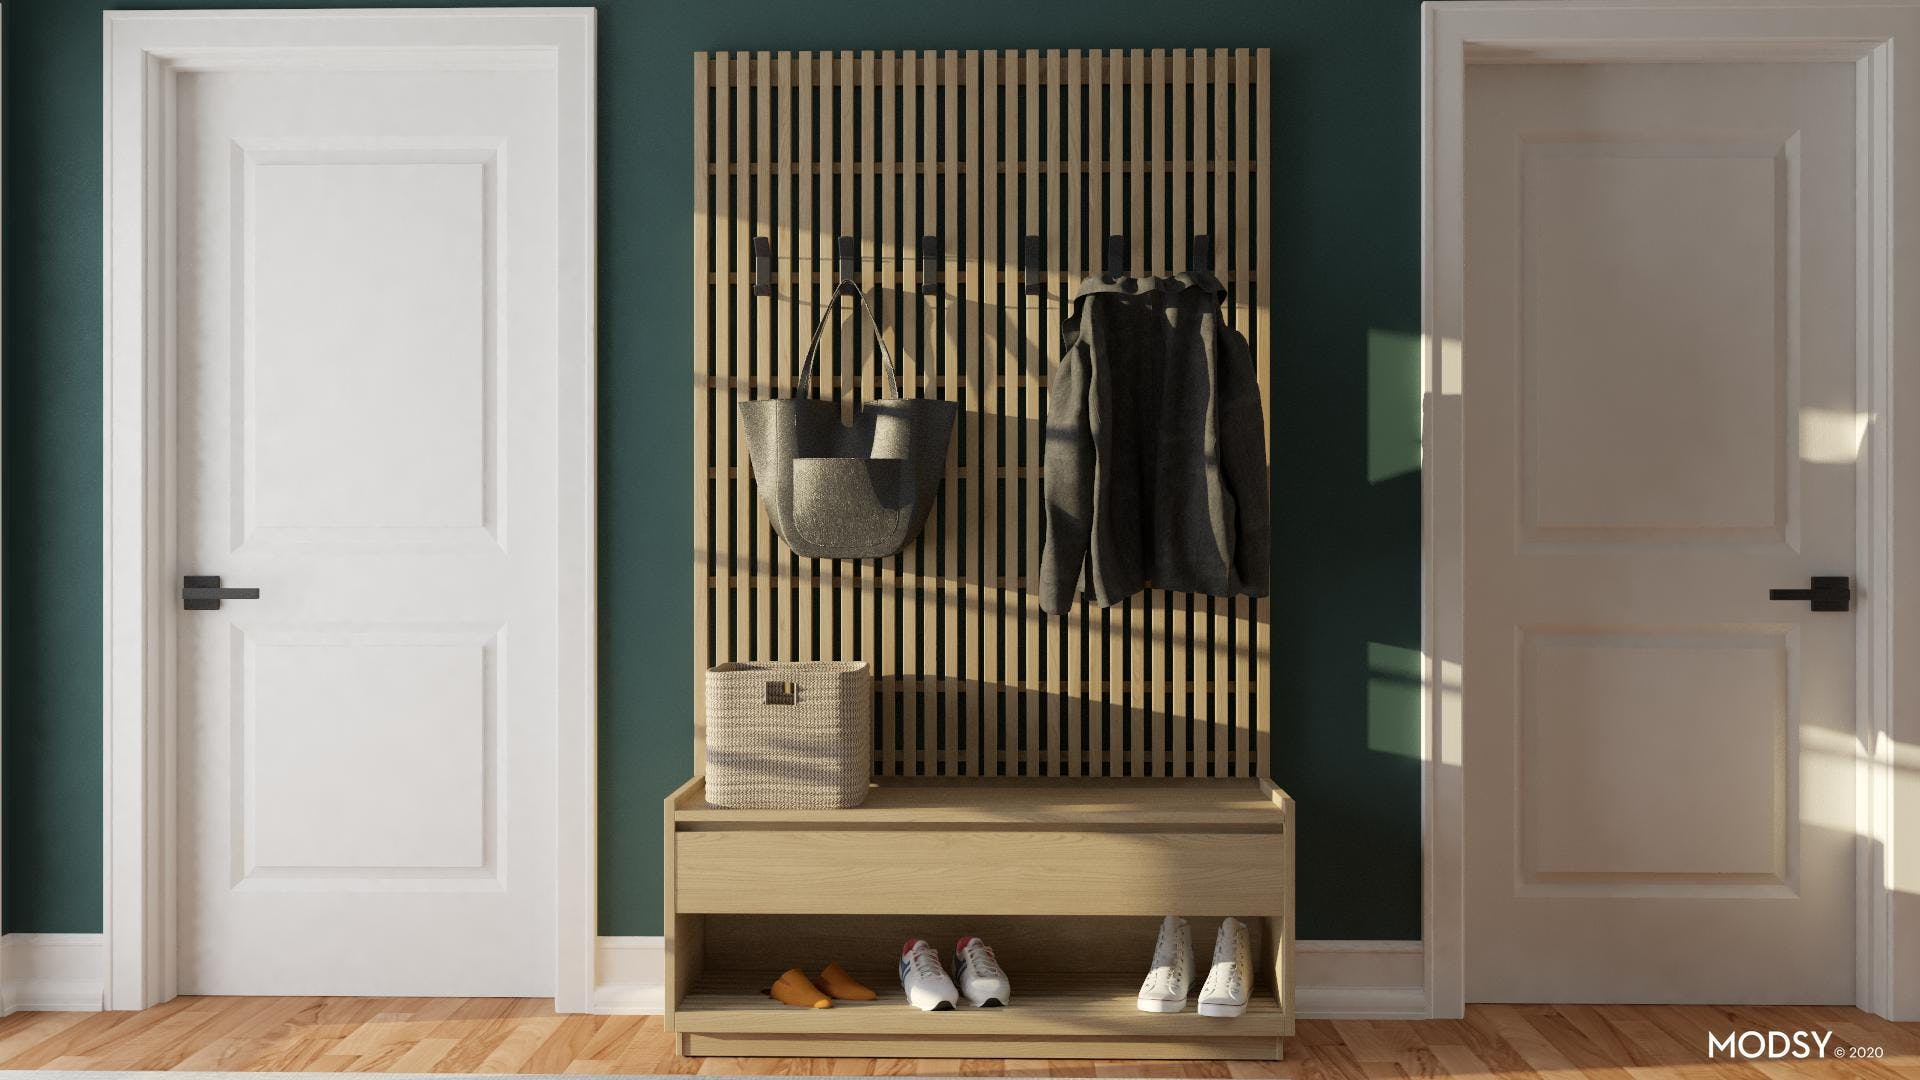 Make a Statement with Hooks